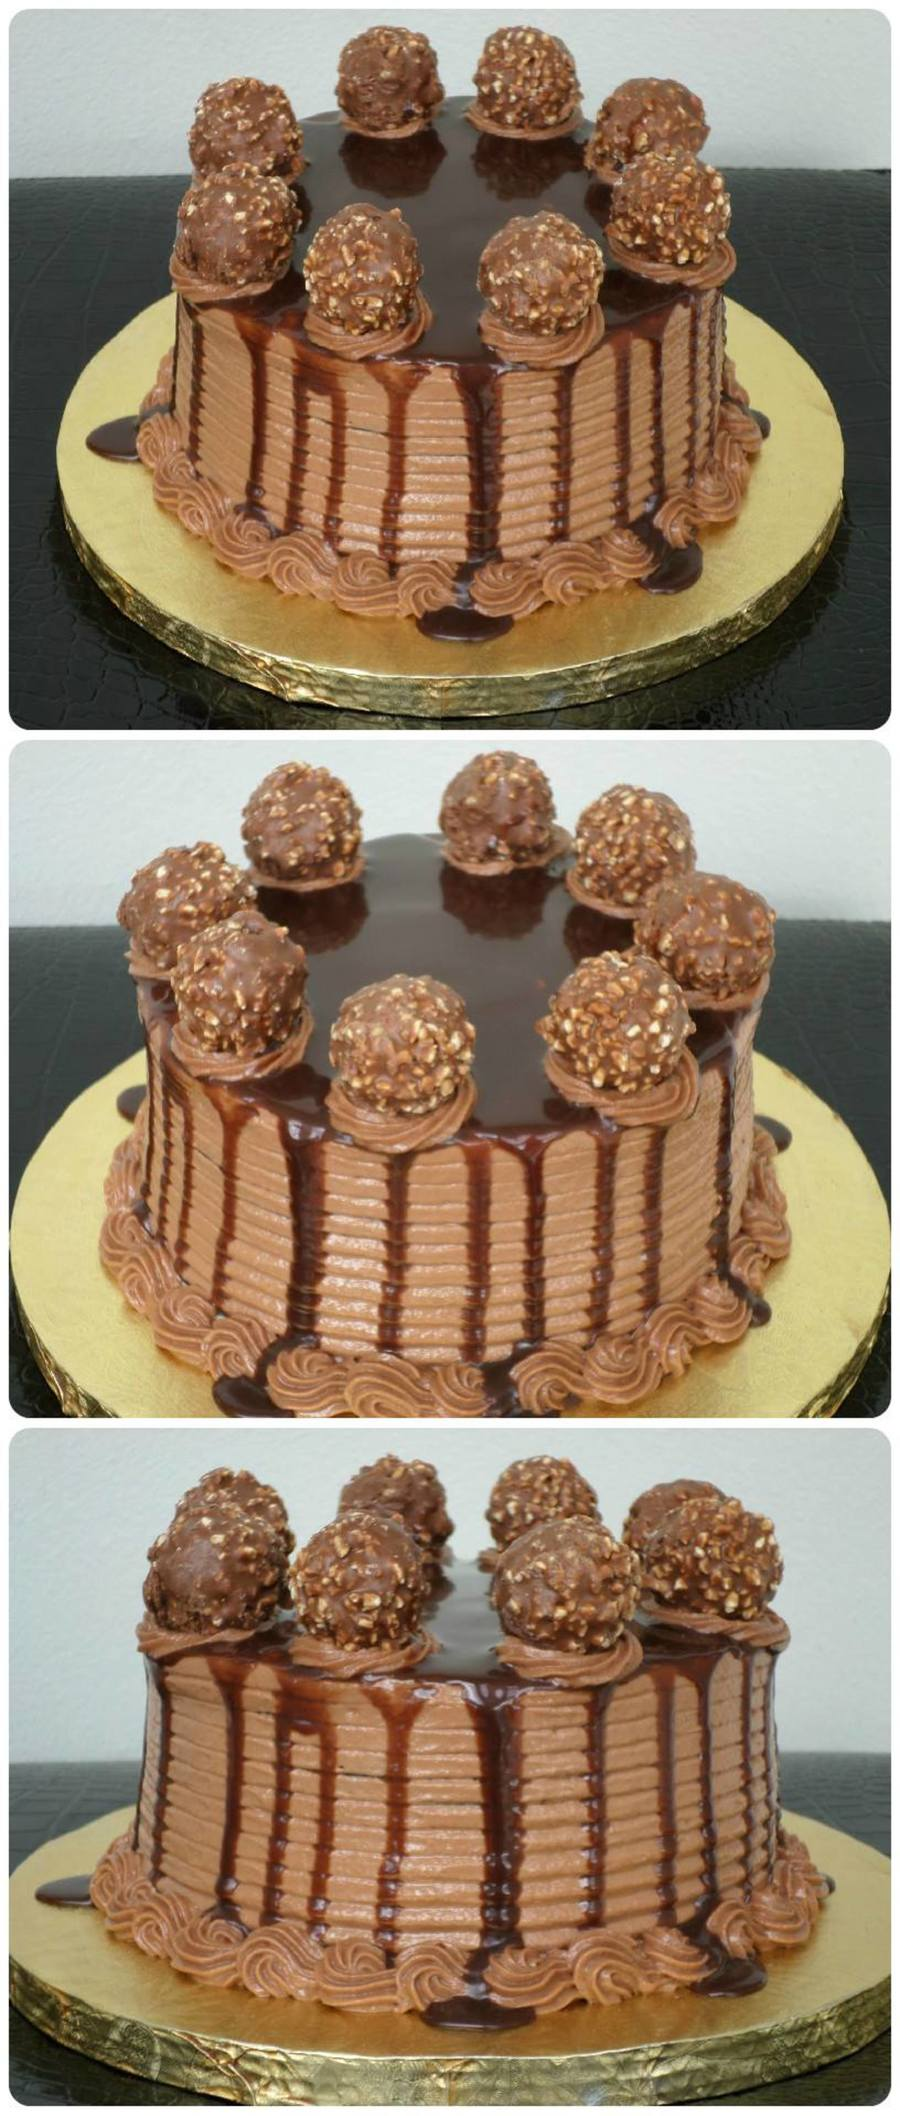 Chocolate Cake With Nutella Frosting, Chocolate Ganache And Ferrero Rocher! Yum! on Cake Central